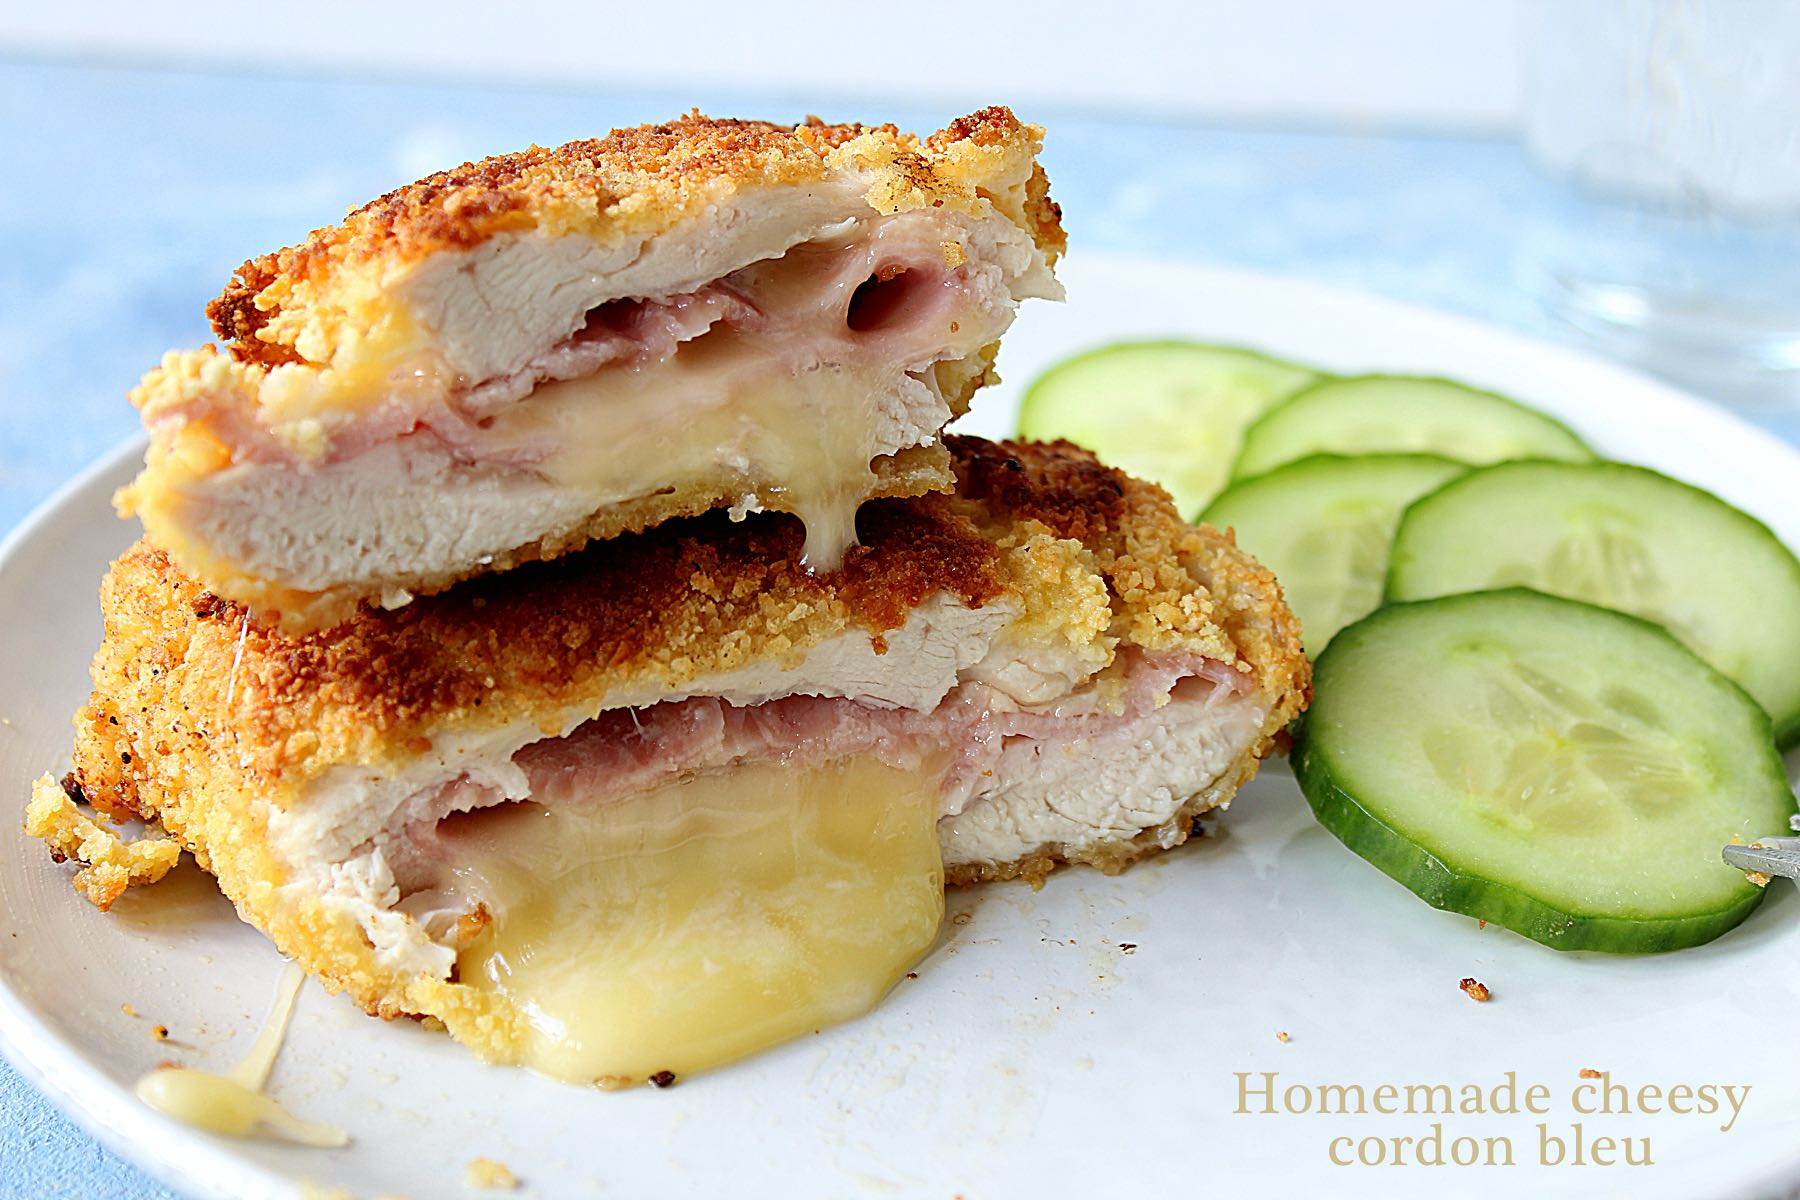 Homemade cheesy cordon bleu